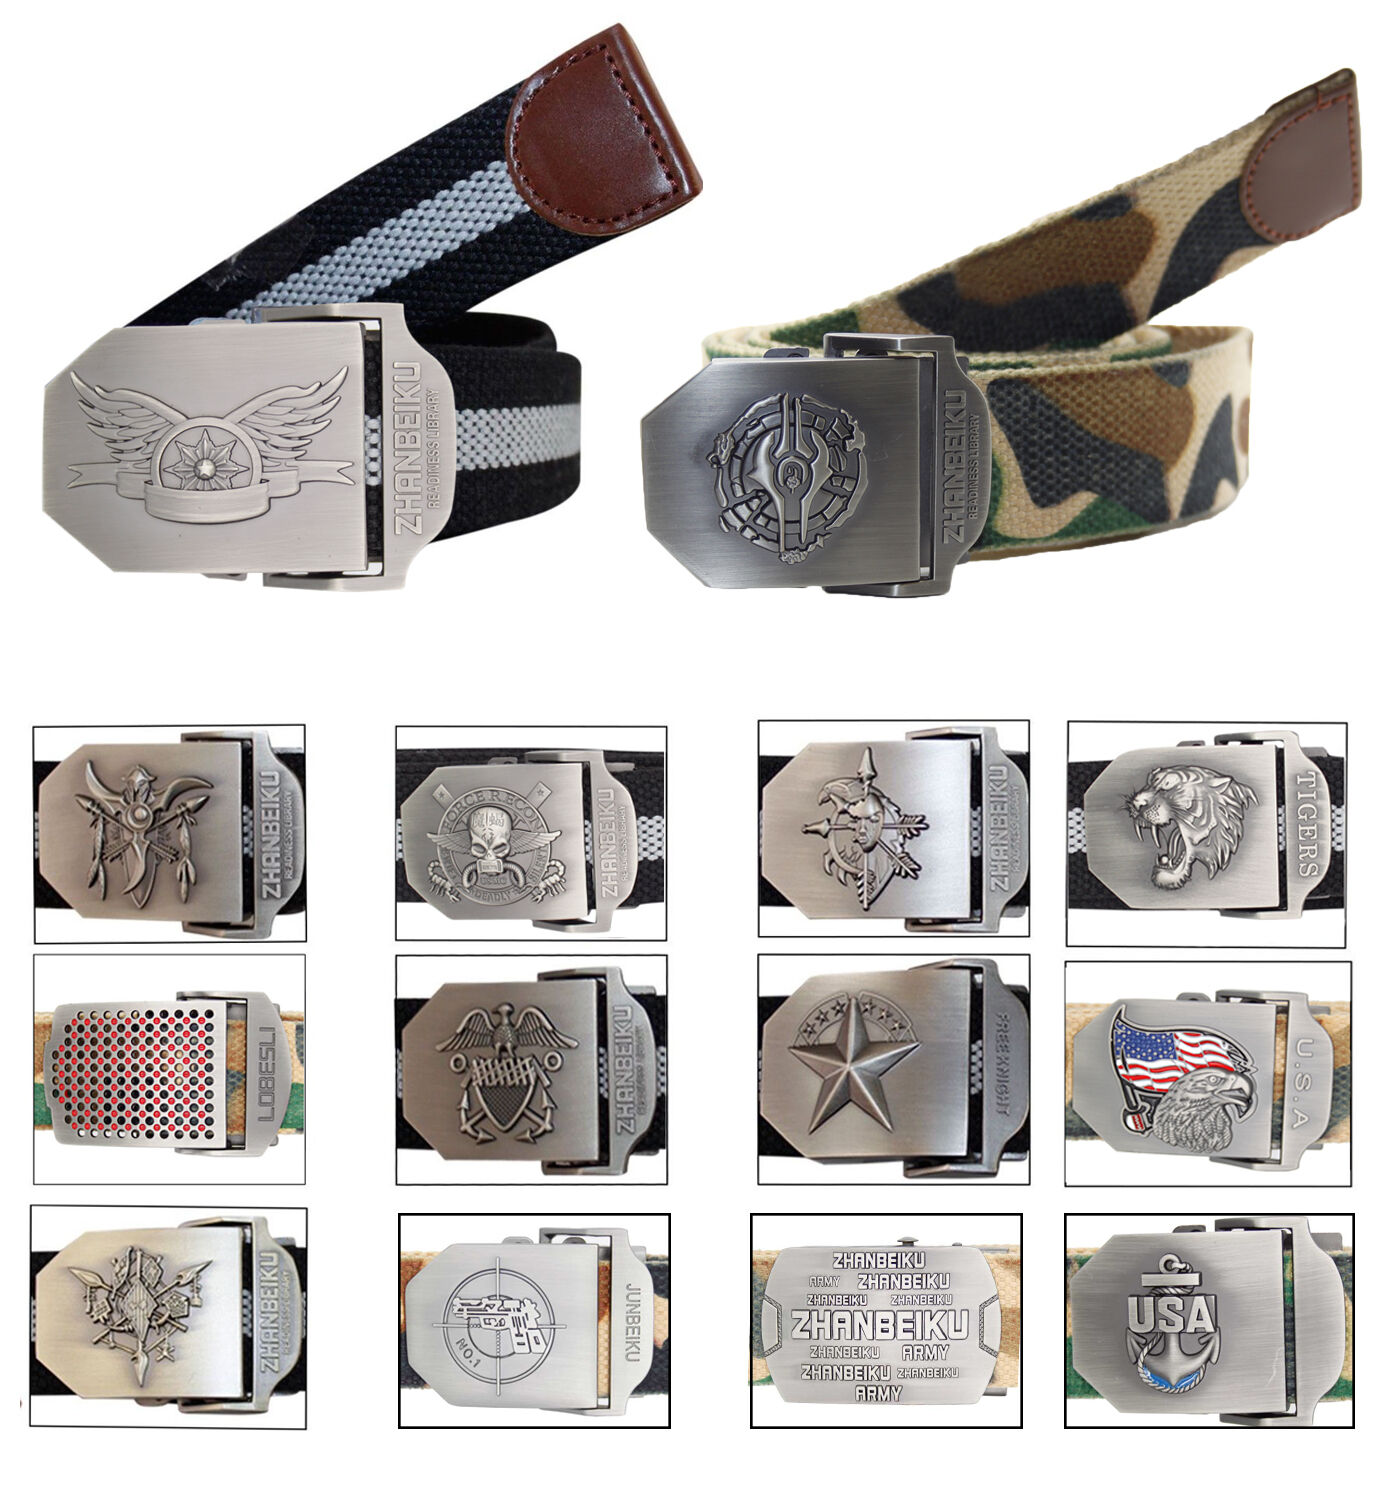 Details about New Mens Novelty Metal Buckle Heavy Canvas Casual Fashion Webbing Big Belts